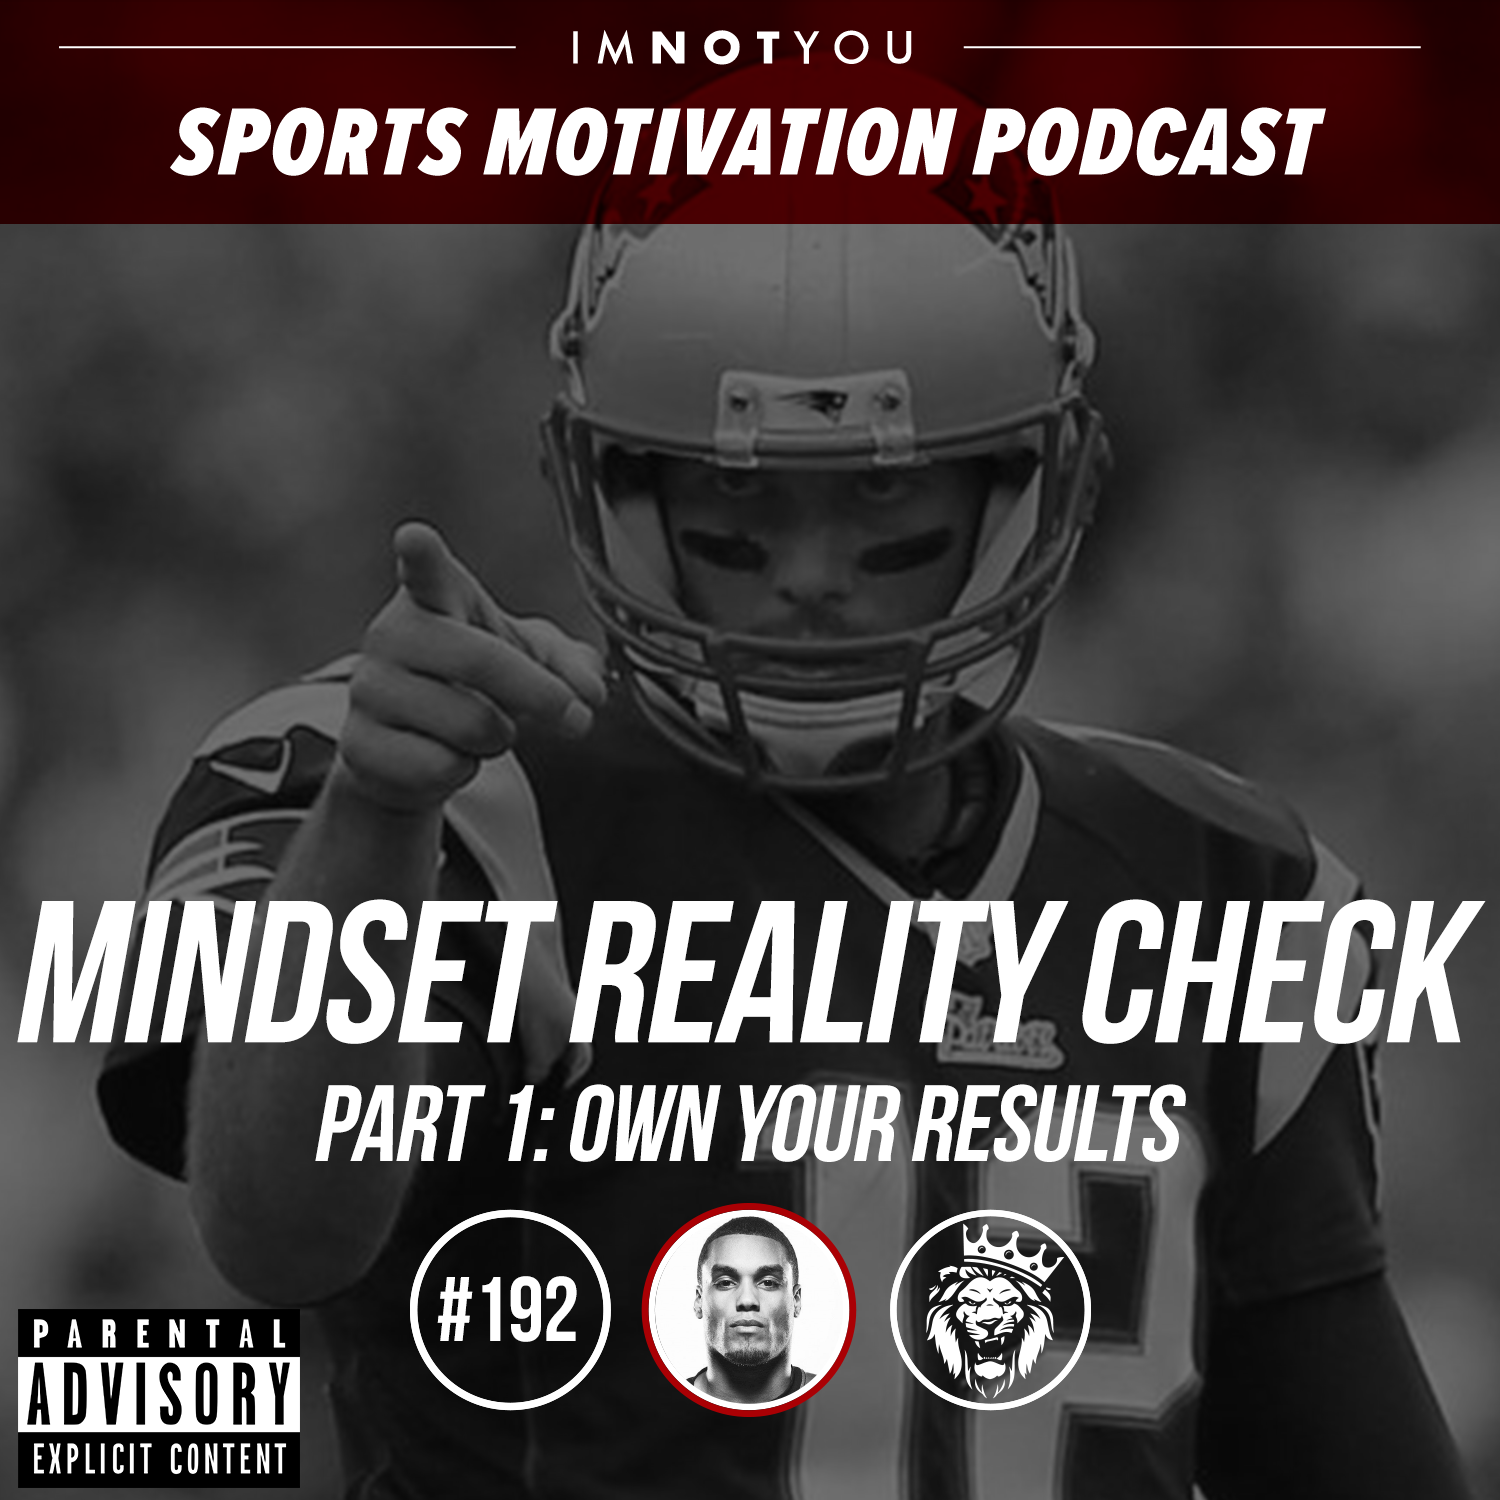 192: Mindset Reality Check Series, Part 1: Own Your Results